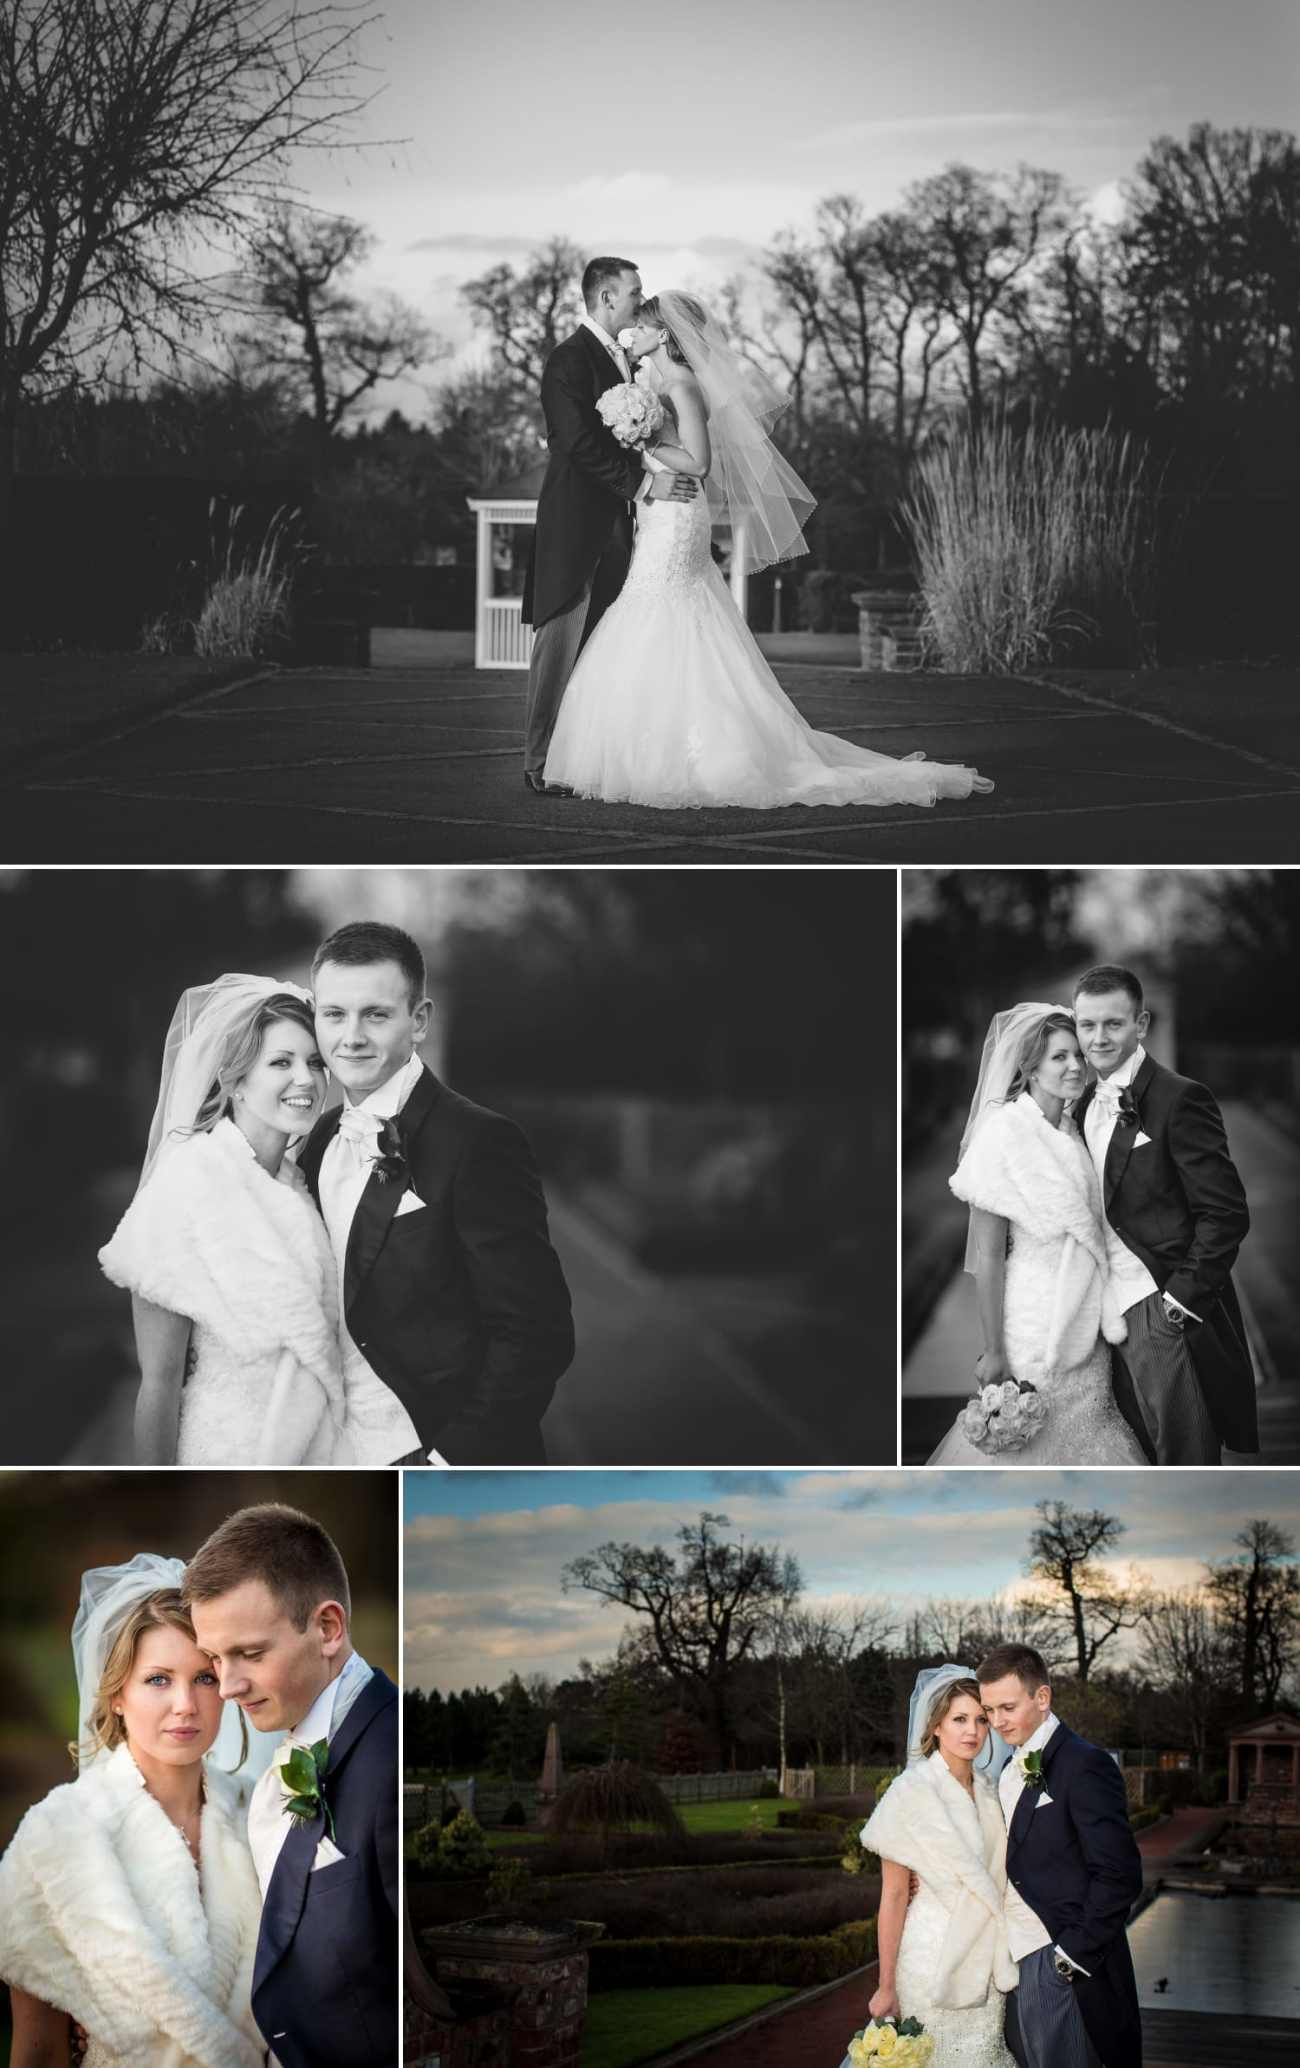 Wedding photography portraits in the gardens of Carden Park Hotel, Chester, Cheshire